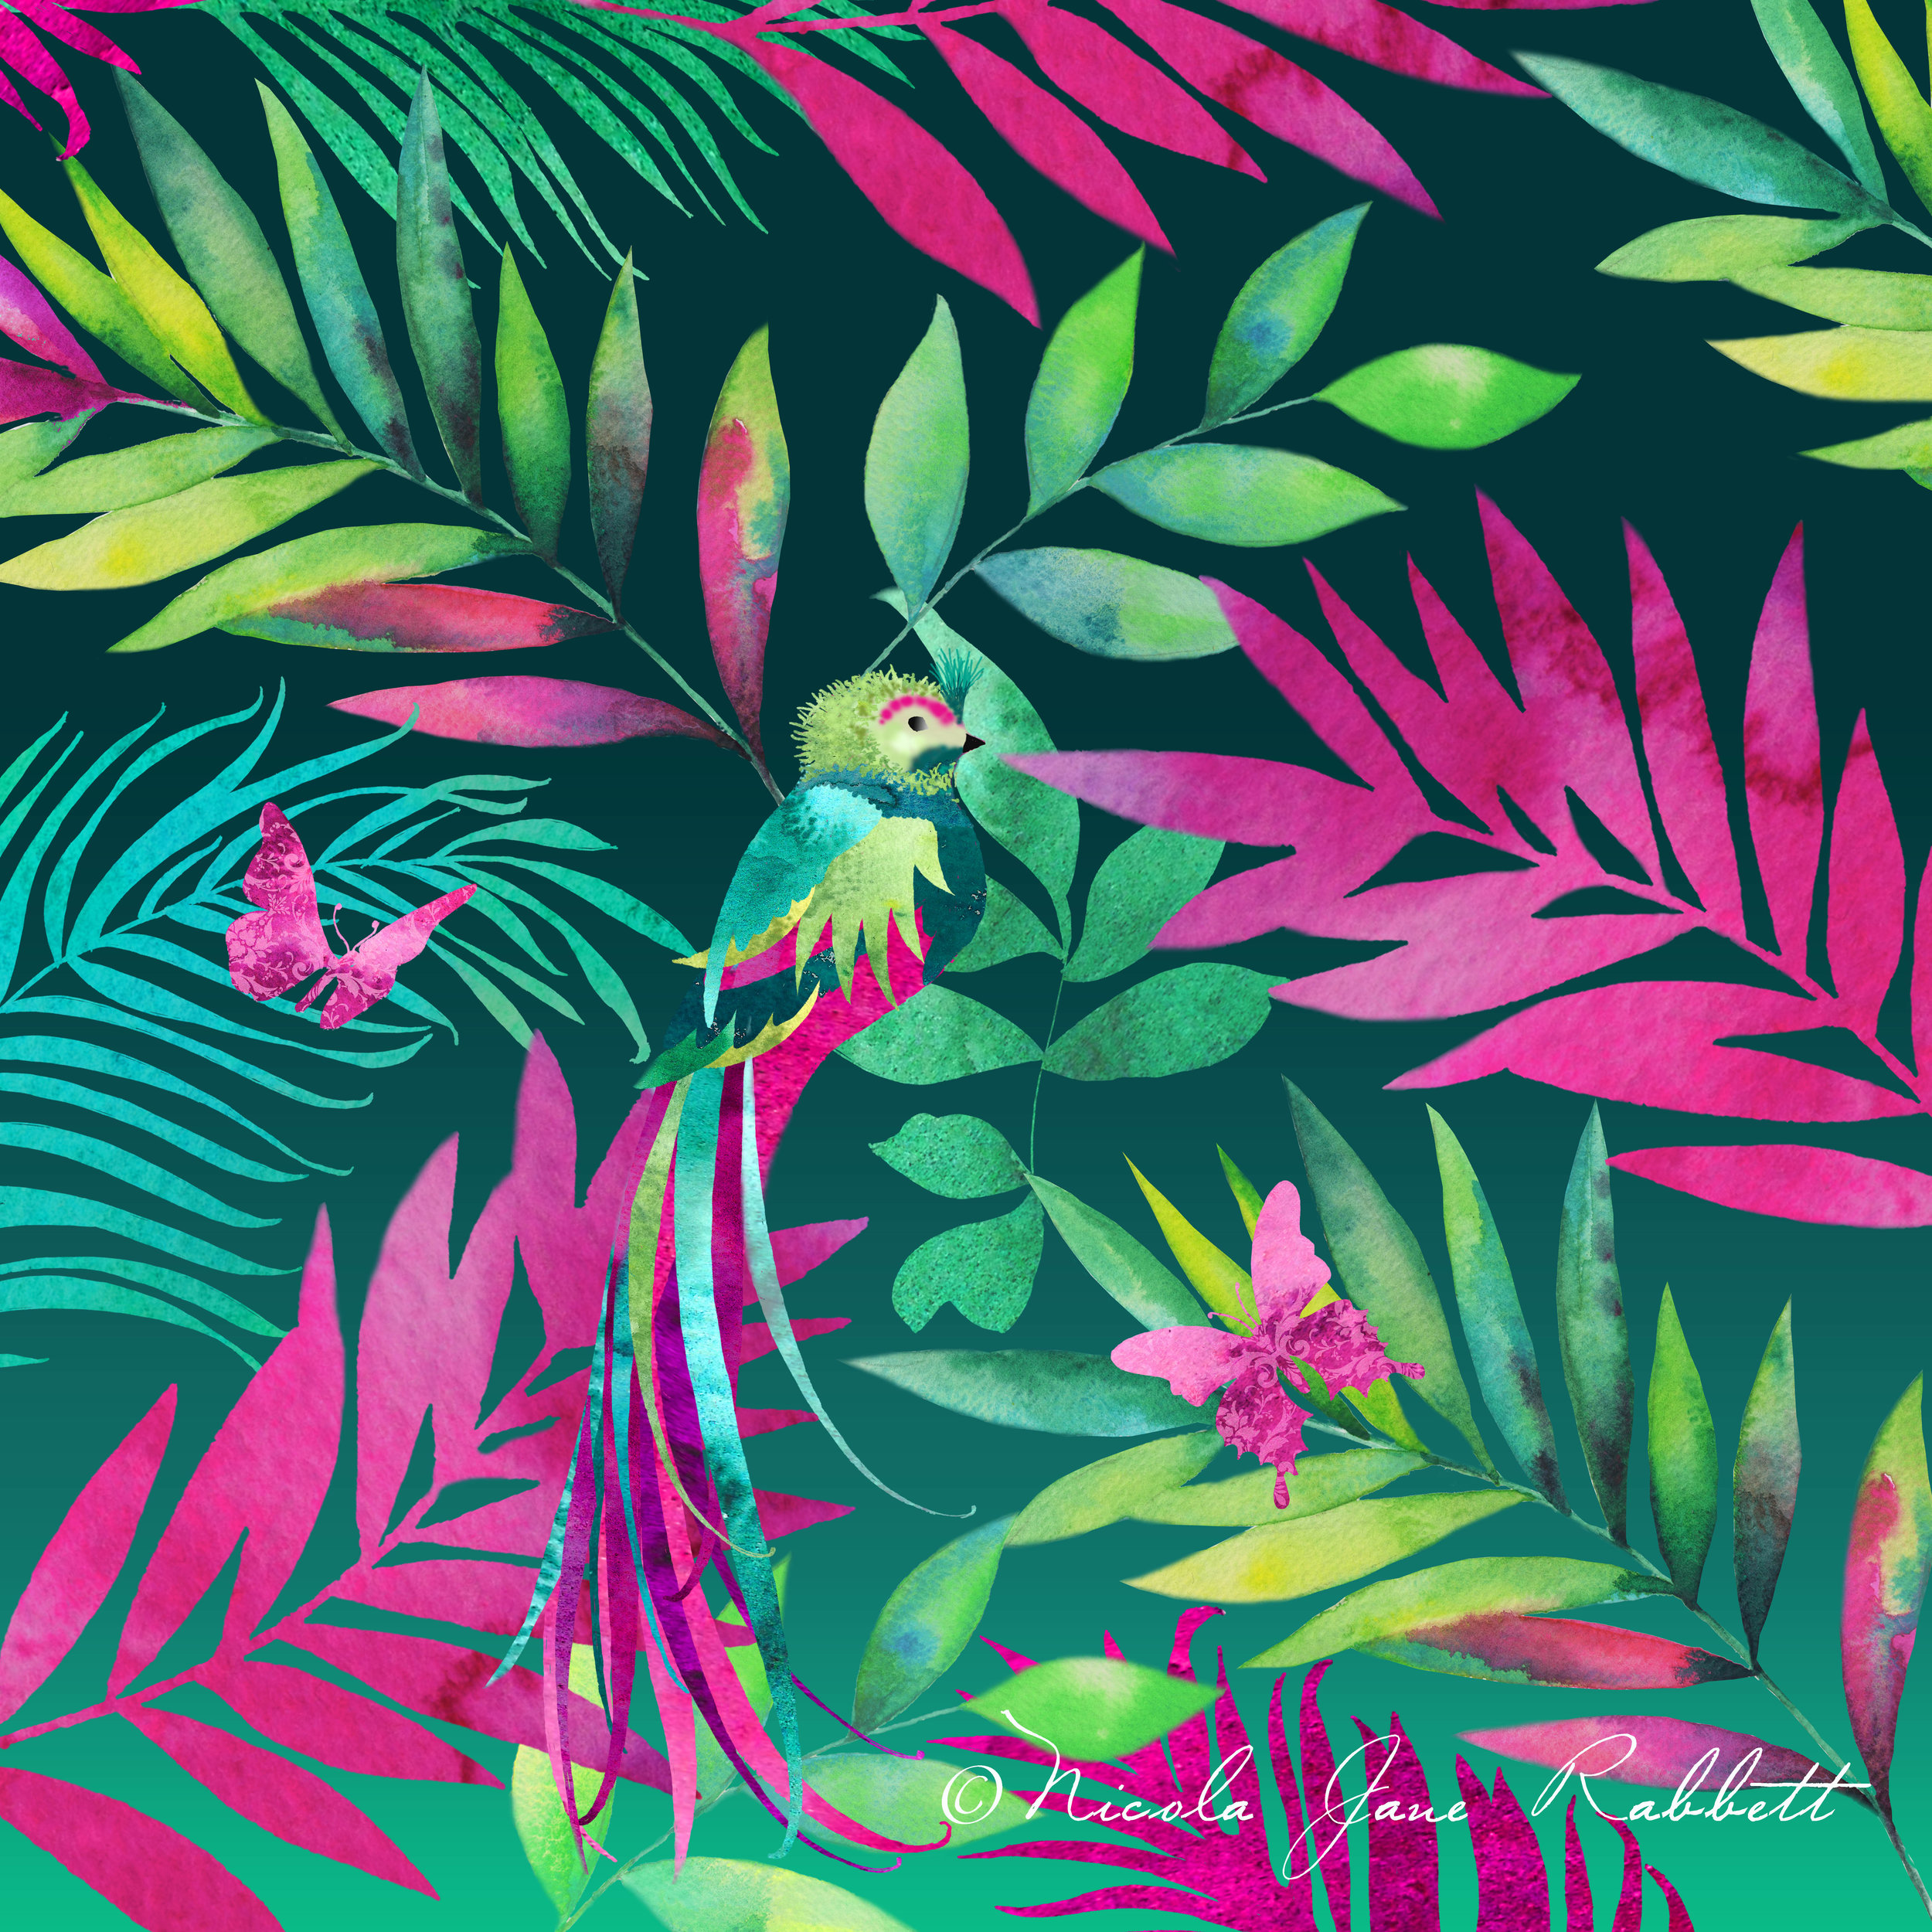 'ZanzibaR' - The first design in a new tropical inspired collection, which will be printed on soft velvet. This one features an exotic bird of paradise with watercolour palm leaves which have all been hand drawn and painted. This design will form part of my new summer collection and be available to buy as scatter cushions in the on-line store soon.